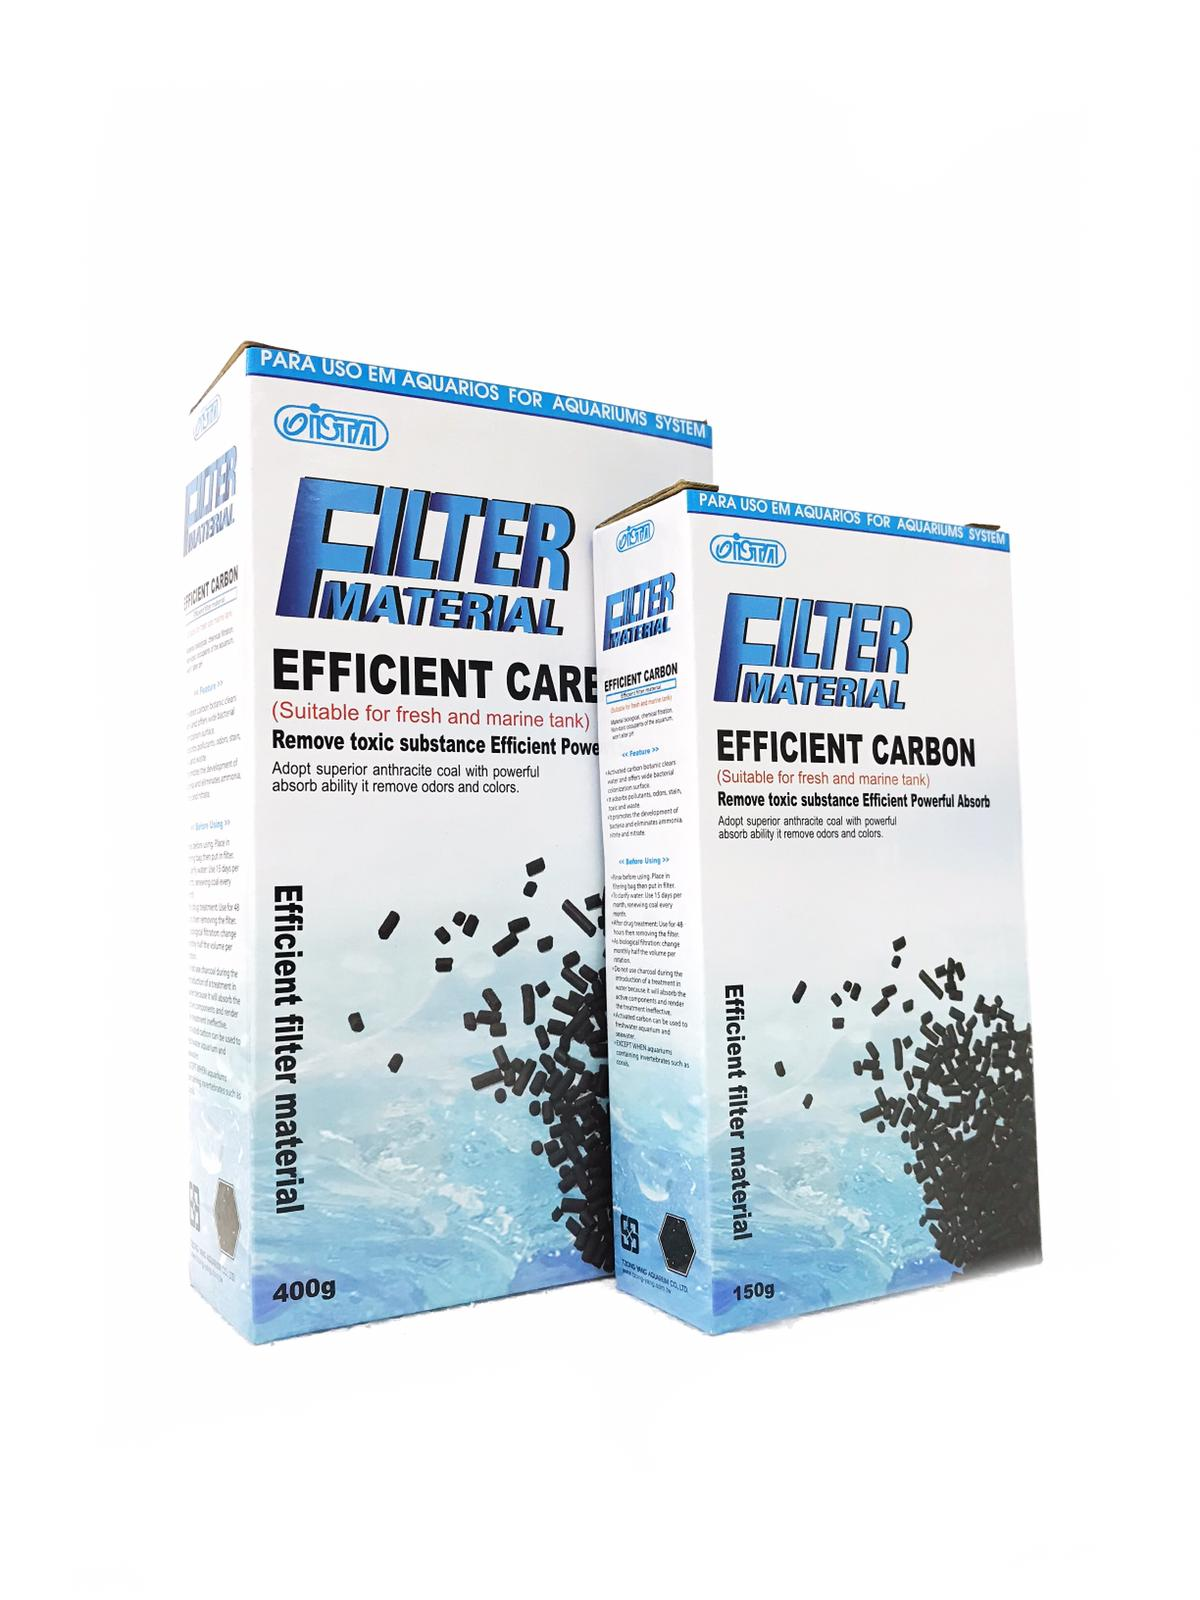 Ista Efficient Carbon